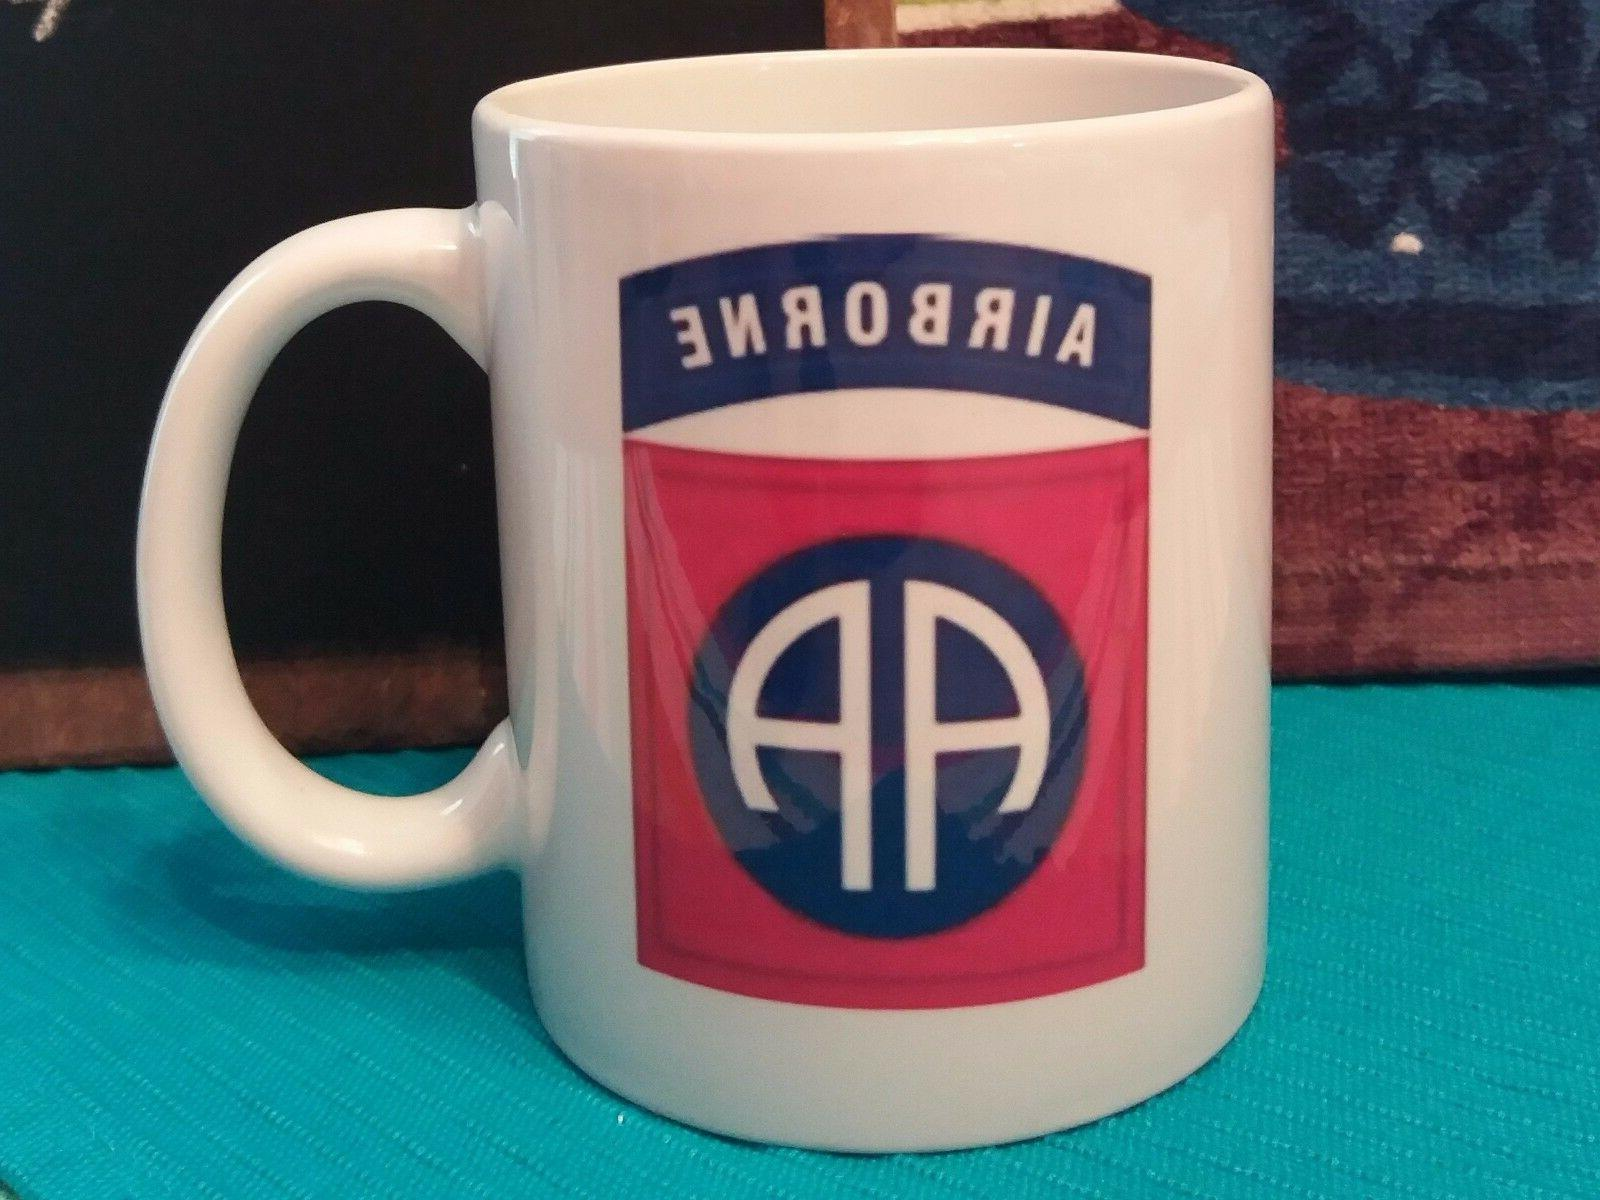 82nd airborne division patch classic coffee mug